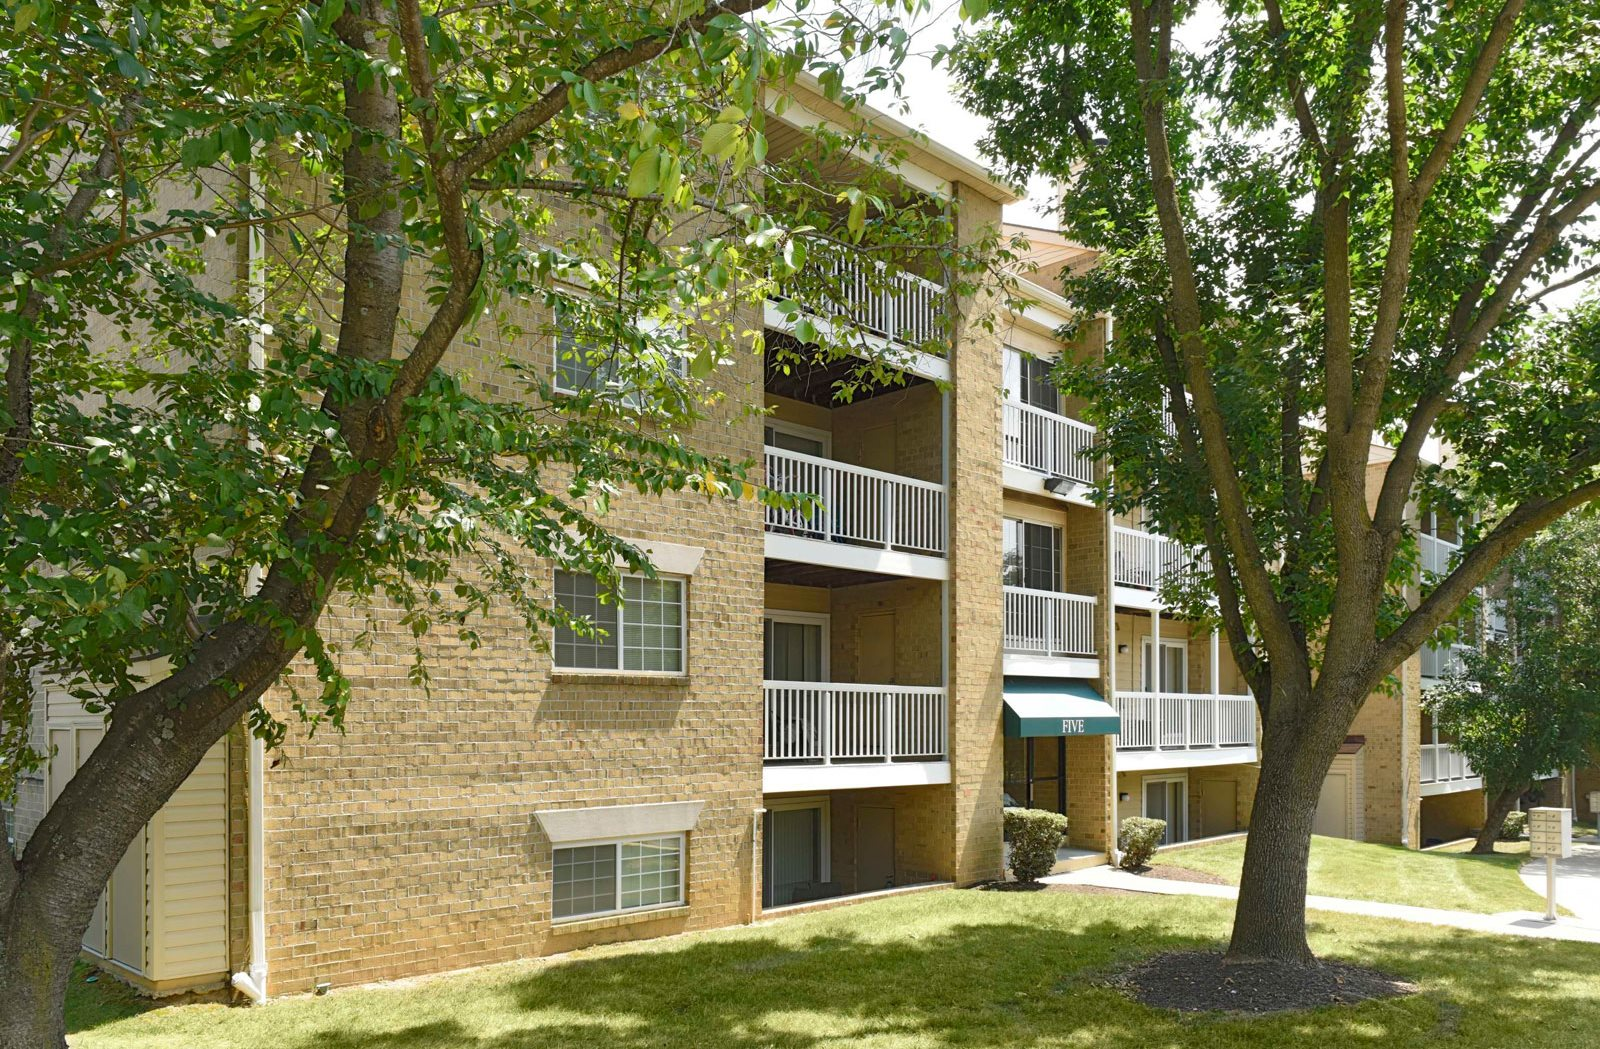 McDonogh Township Apartments | Apartments in Owings Mills, MD